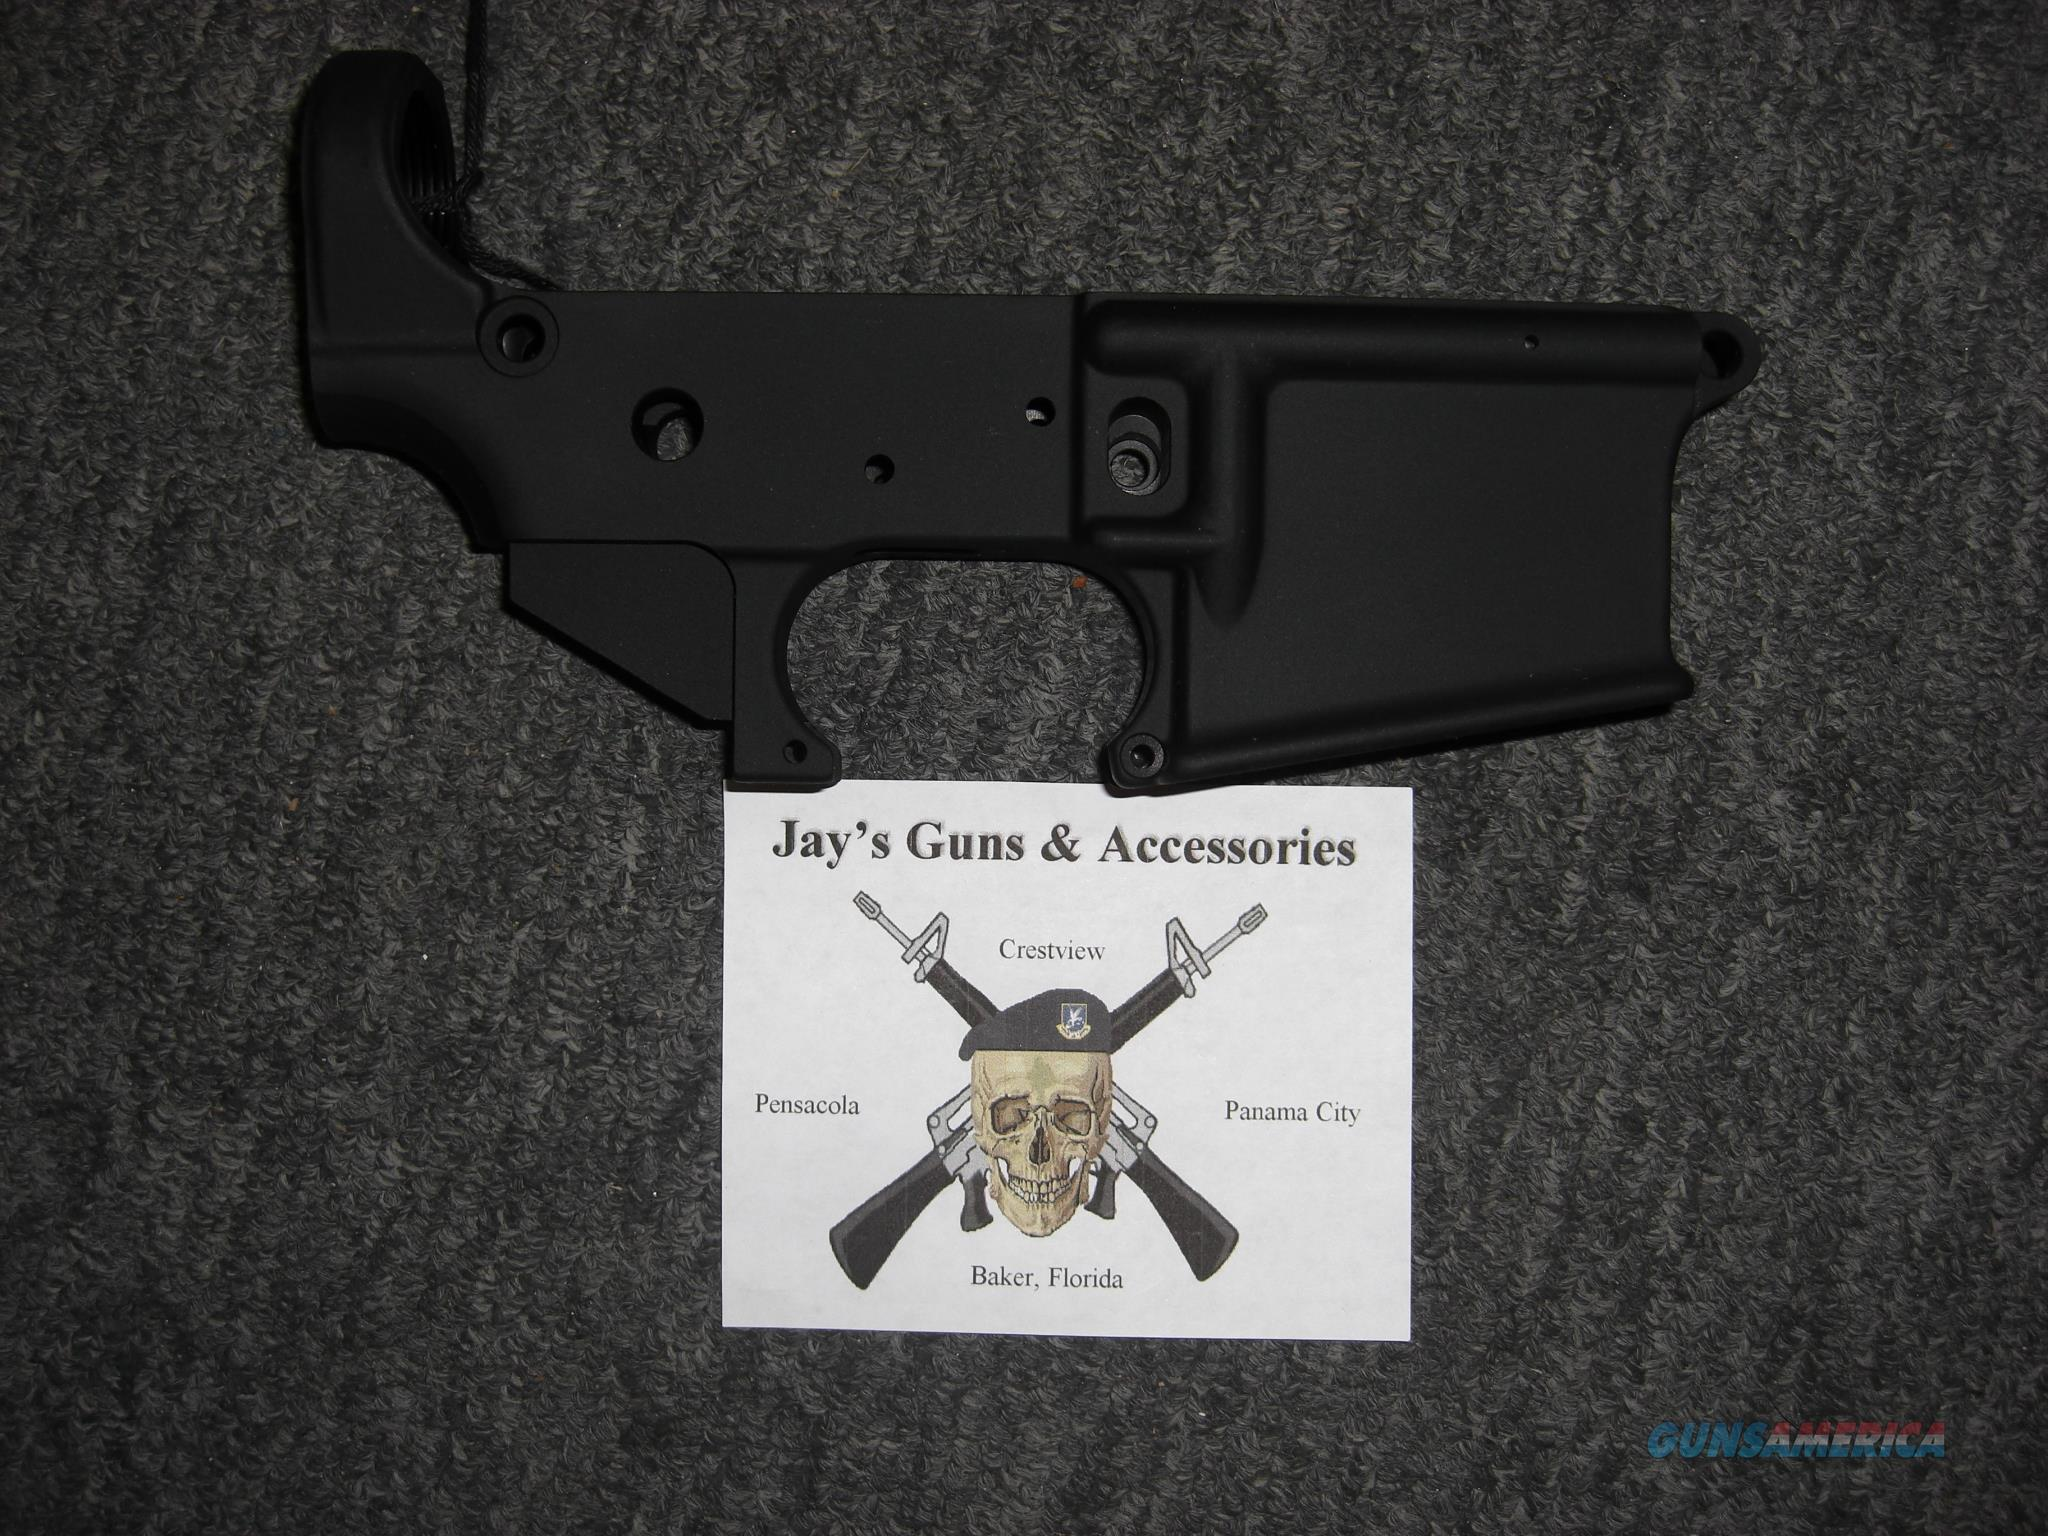 Anderson Mfg AM-15 (Lower Only)  Guns > Rifles > AR-15 Rifles - Small Manufacturers > Lower Only